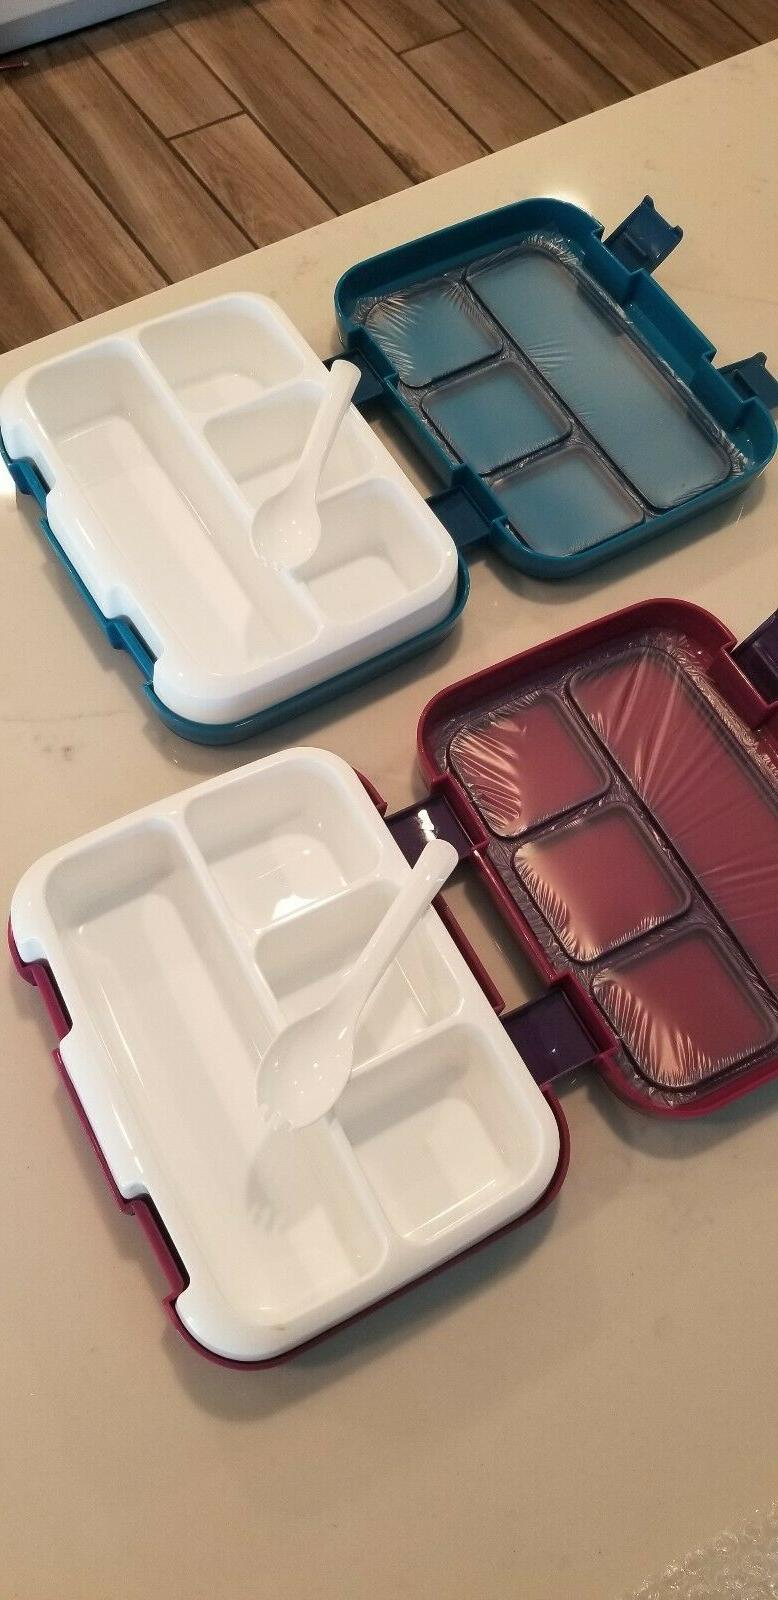 2 Bento Lunch Boxes 4-Compartment Set Meal